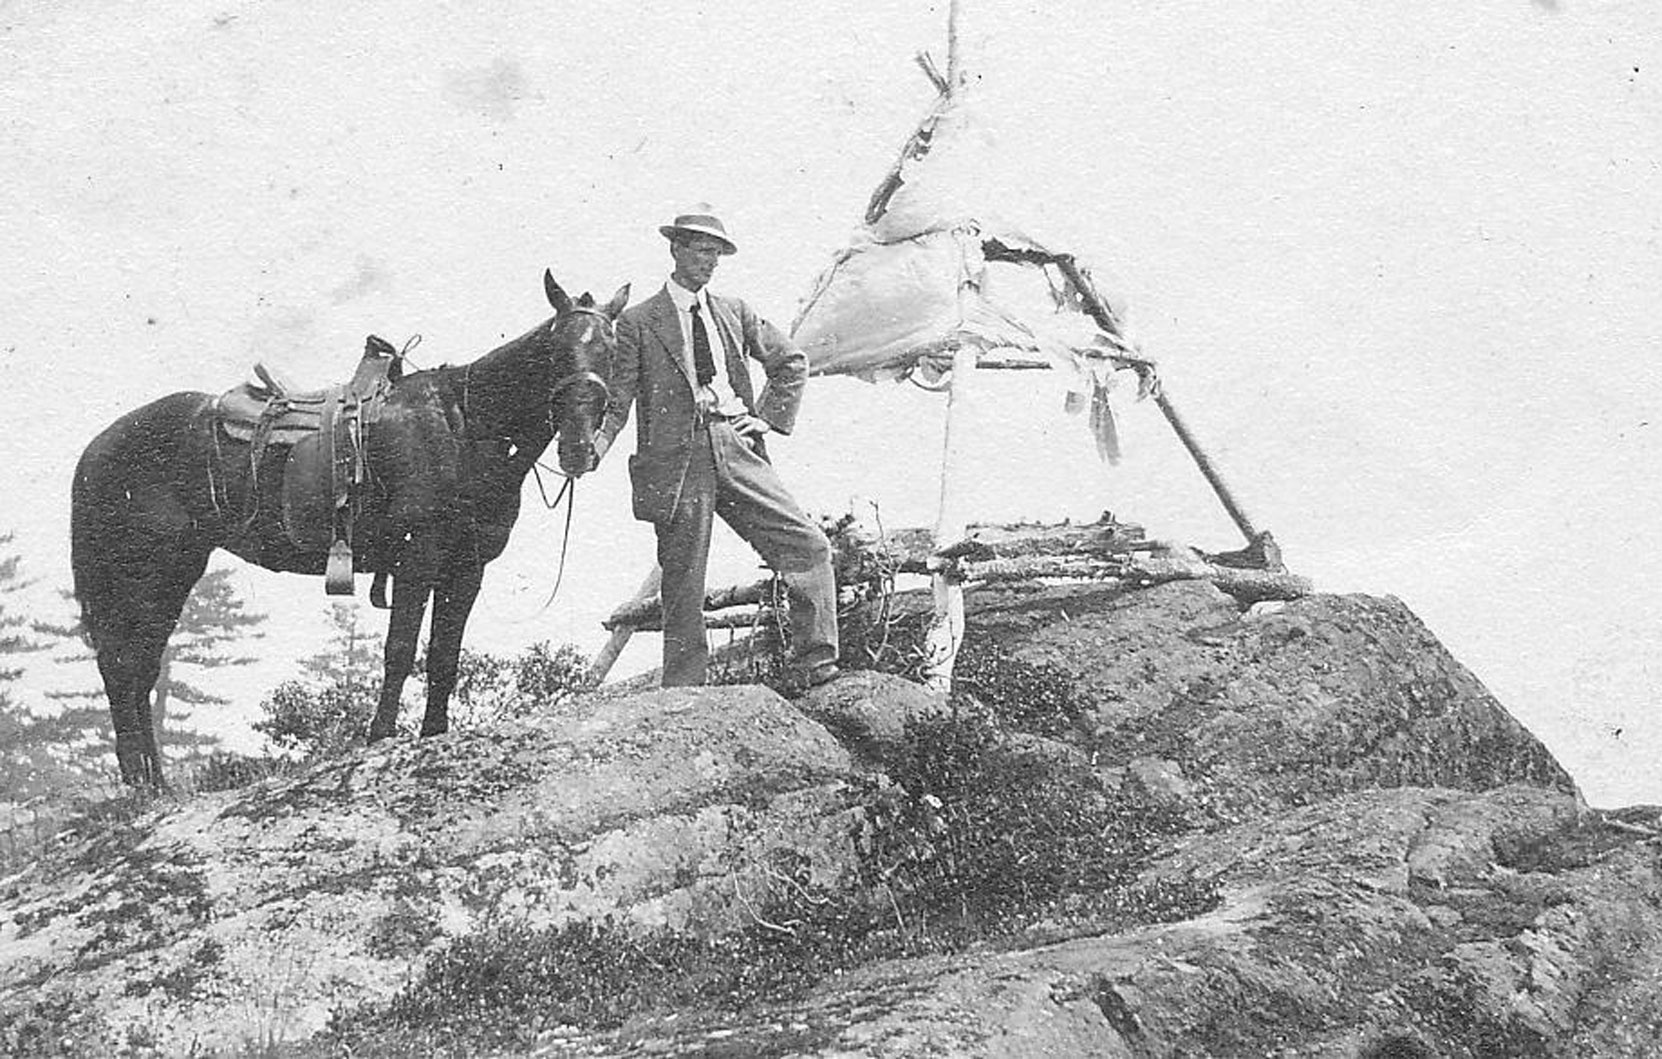 Ormond Towers Smythe on Mt. Prevost, circa 1920. The tent is for the surveyors' pin that is still on the west hump of Mt. Prevost. (photo courtesy of Larry Kier - private collection)